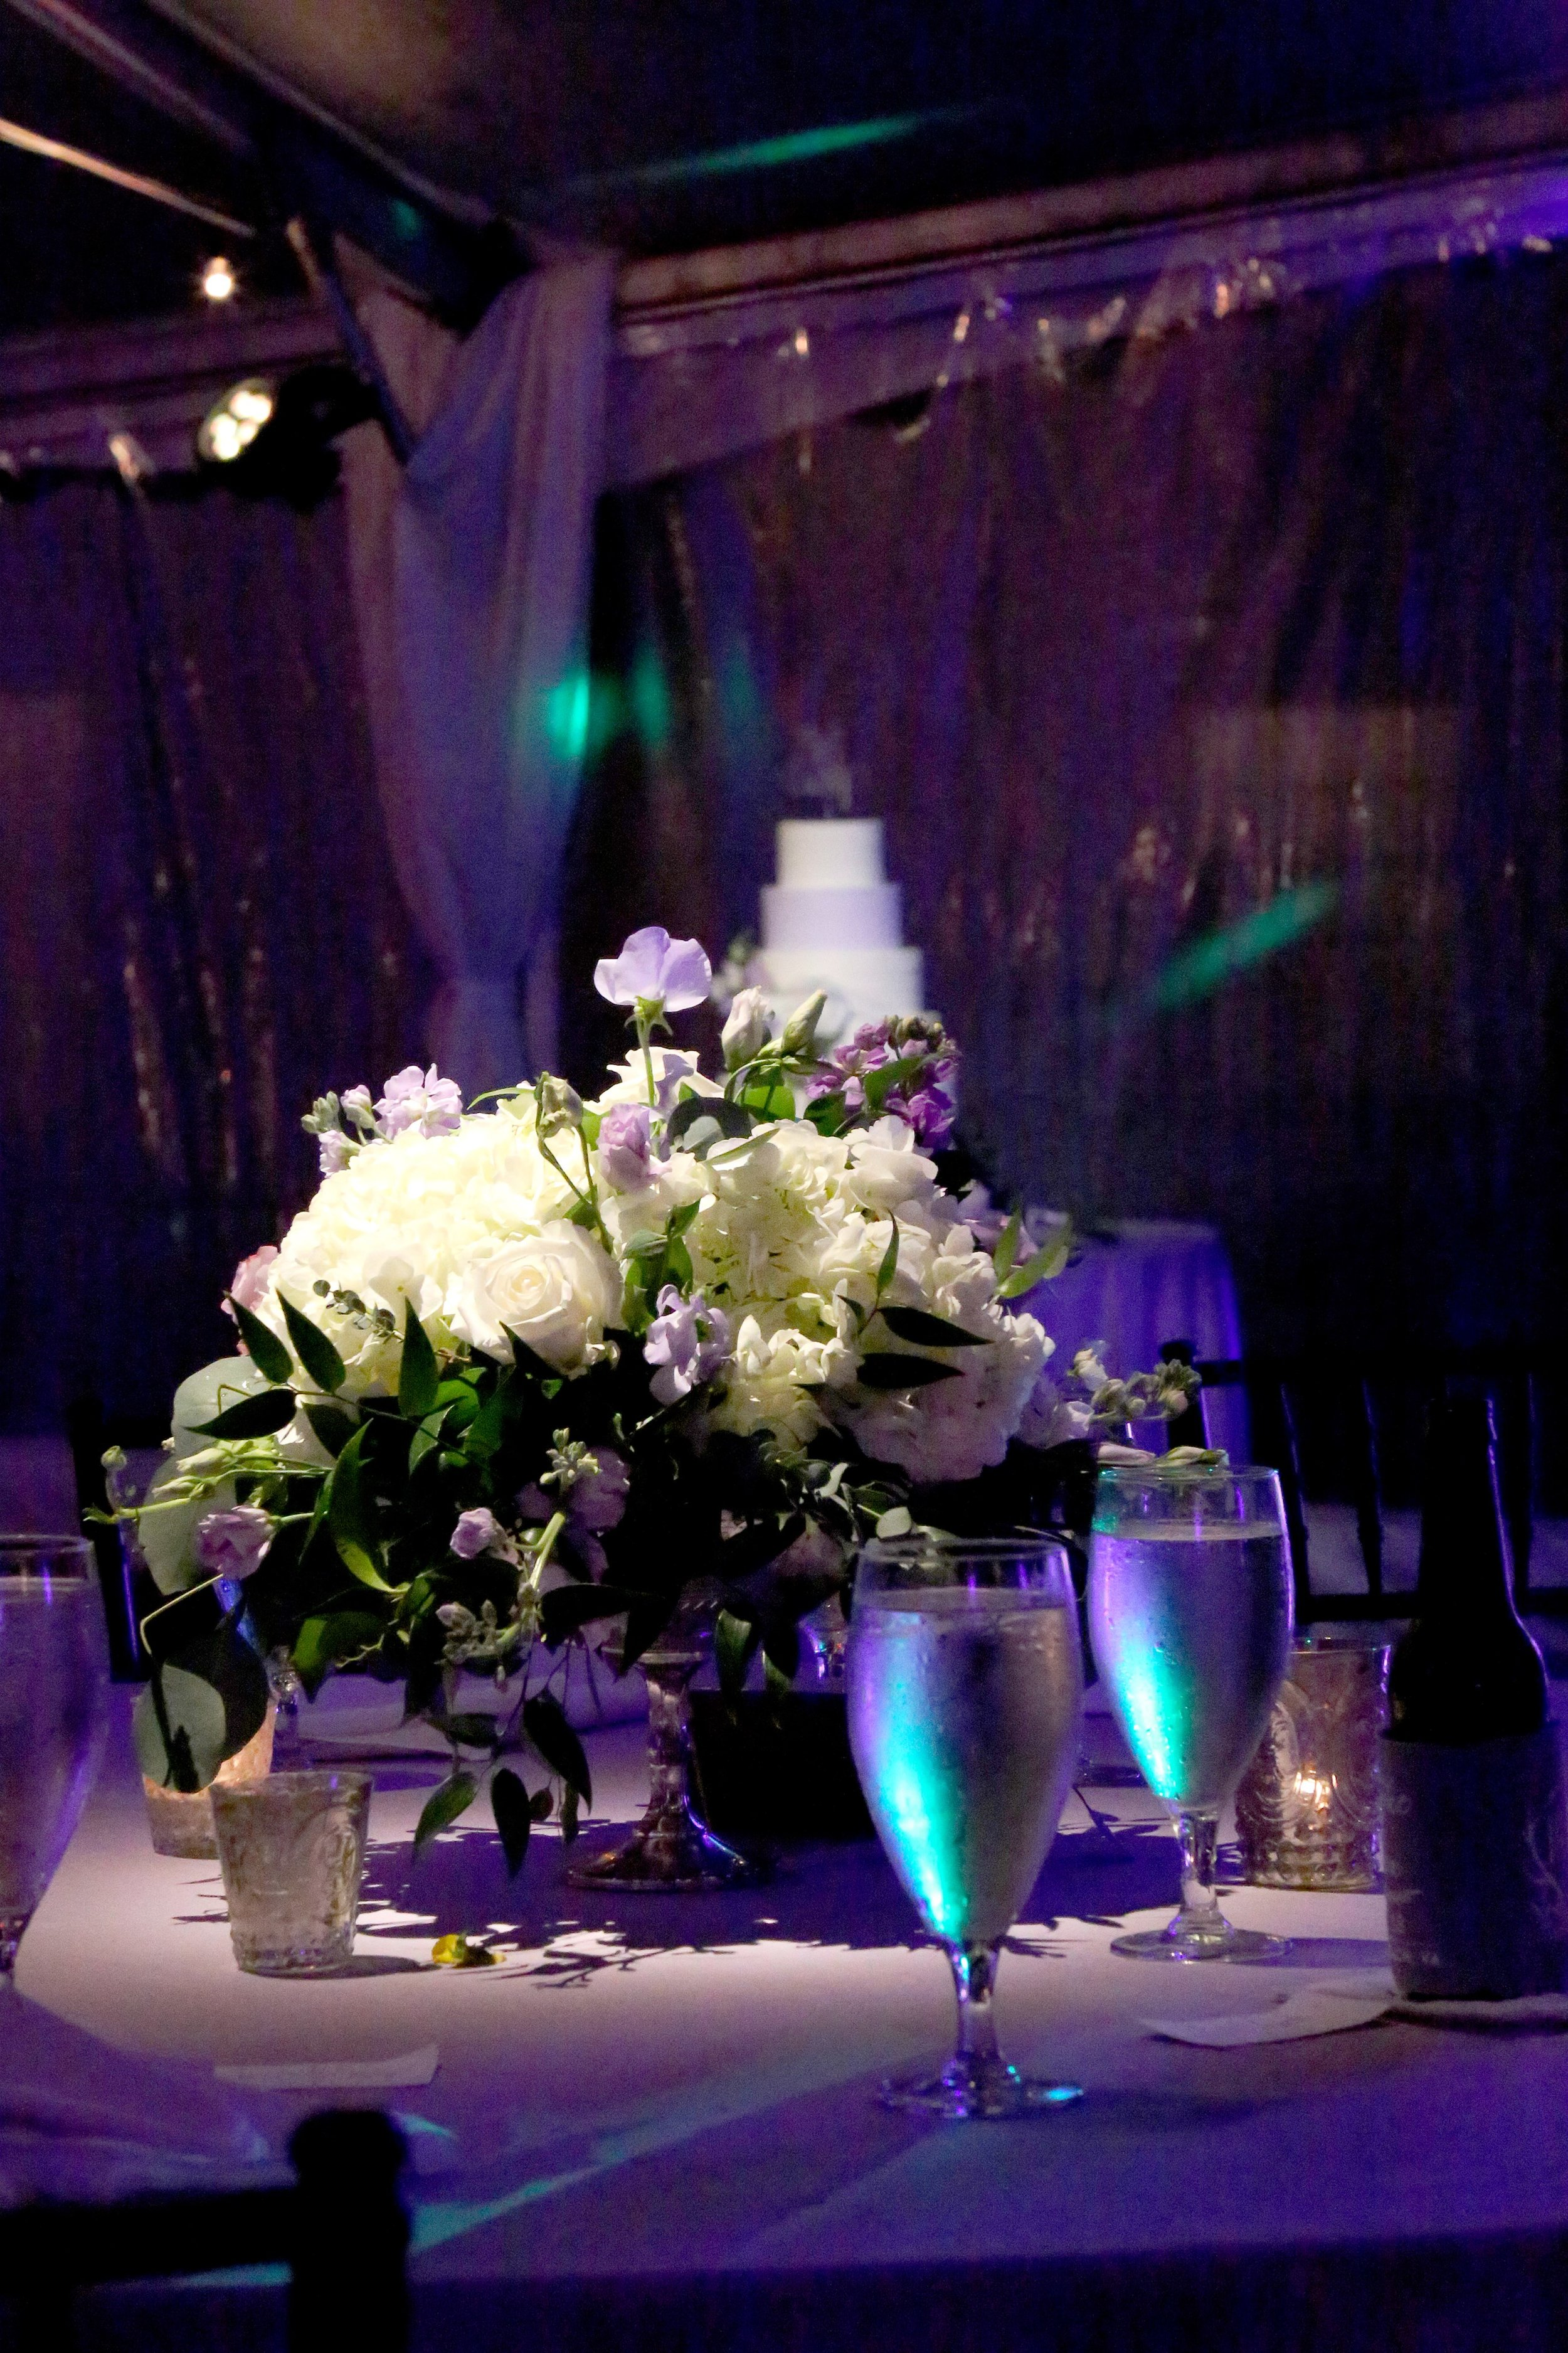 Centerpiece With Cake In The Background.jpg